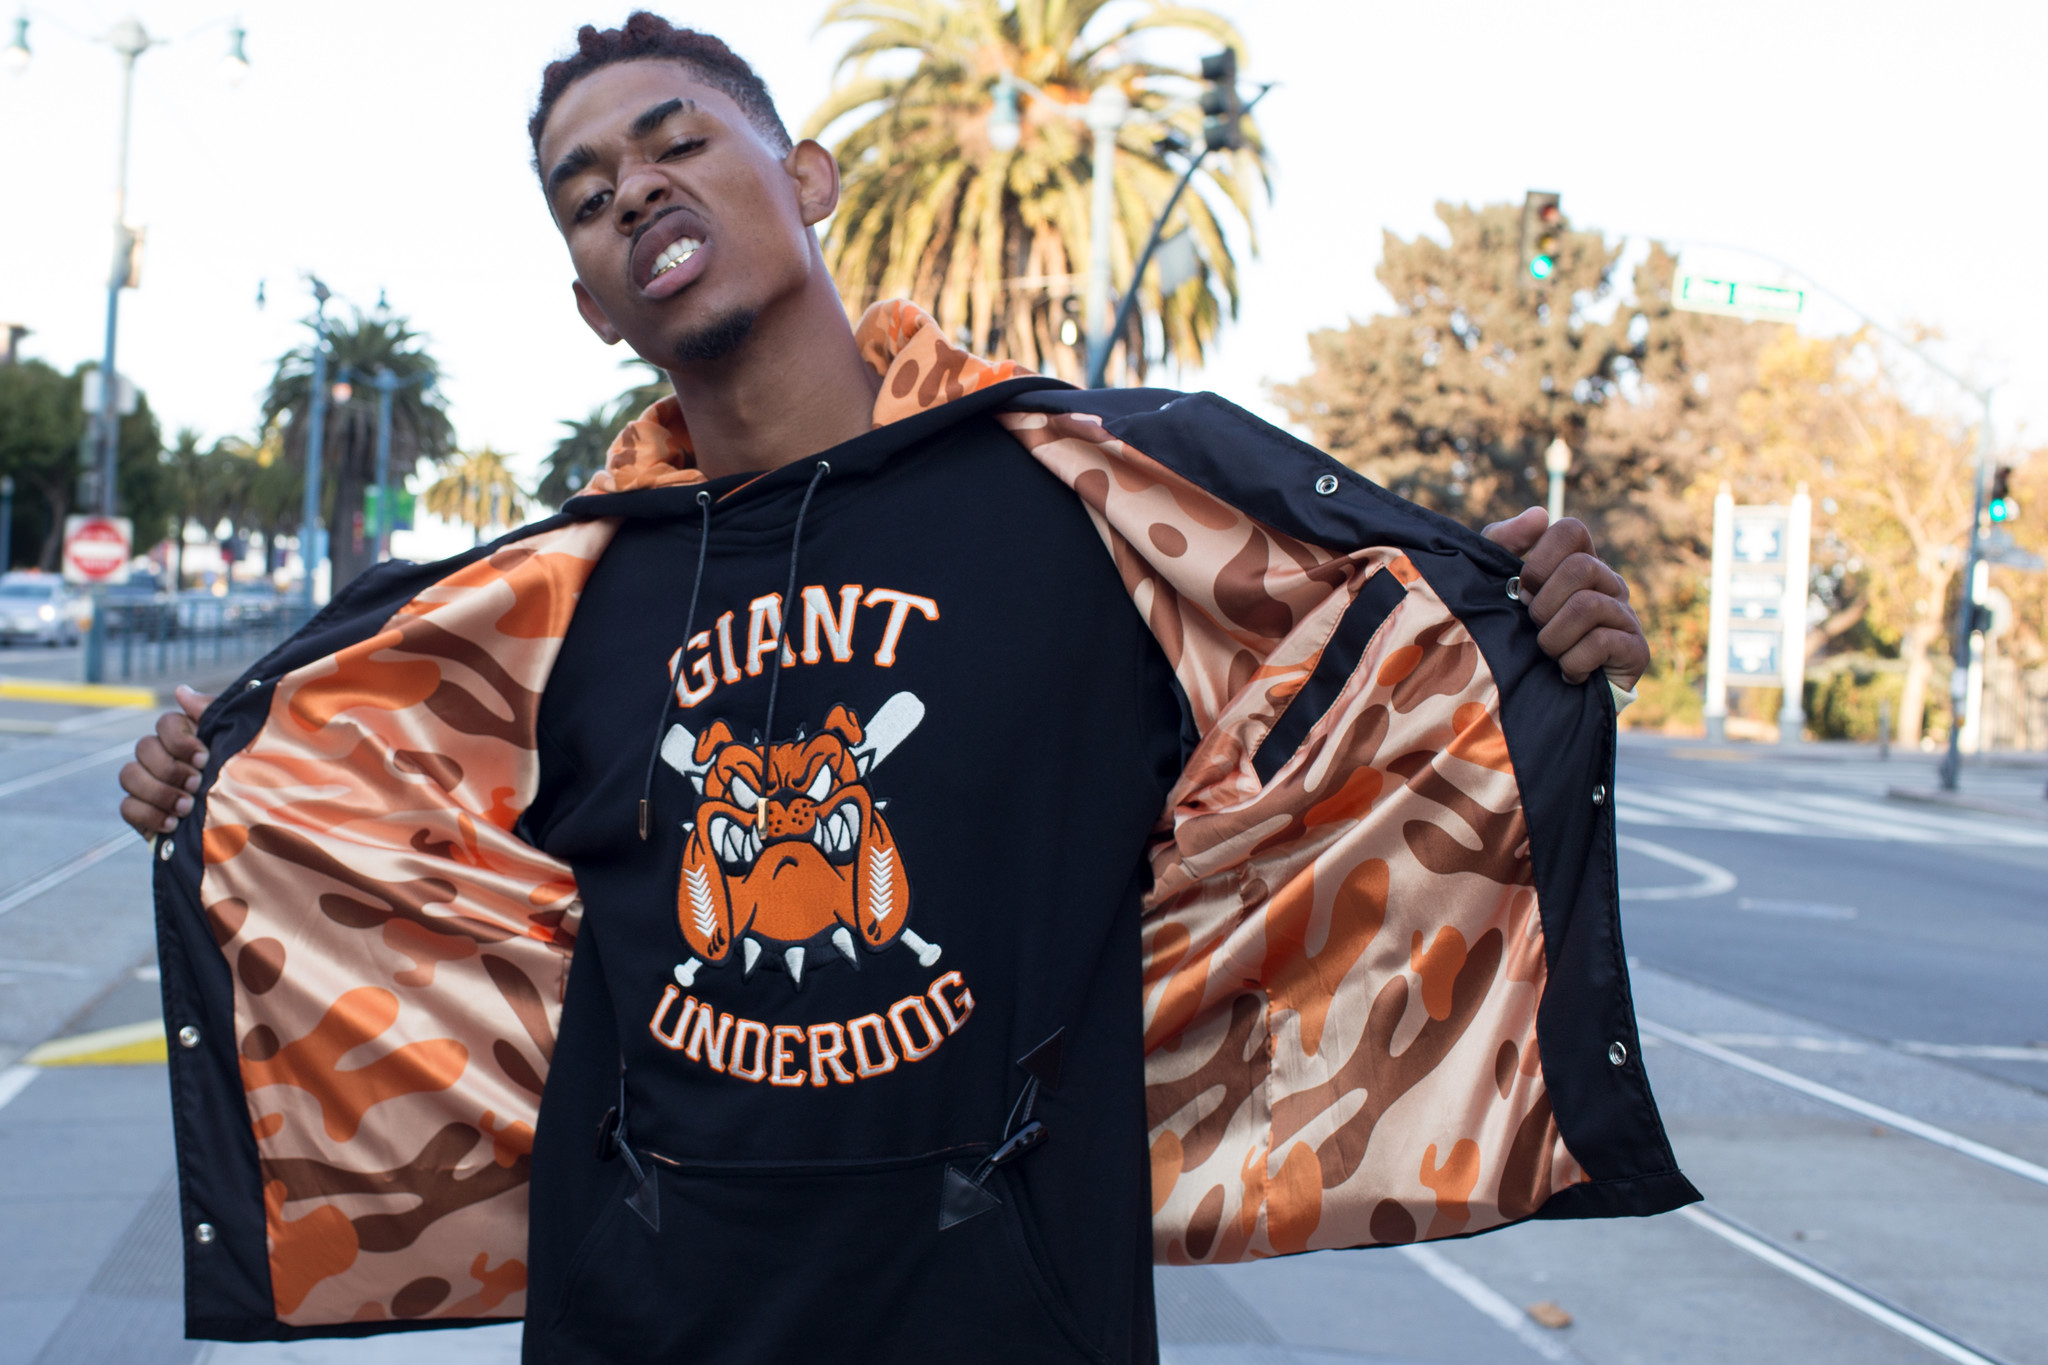 Showbanga Hidden Hype Giant Underdog Capsule